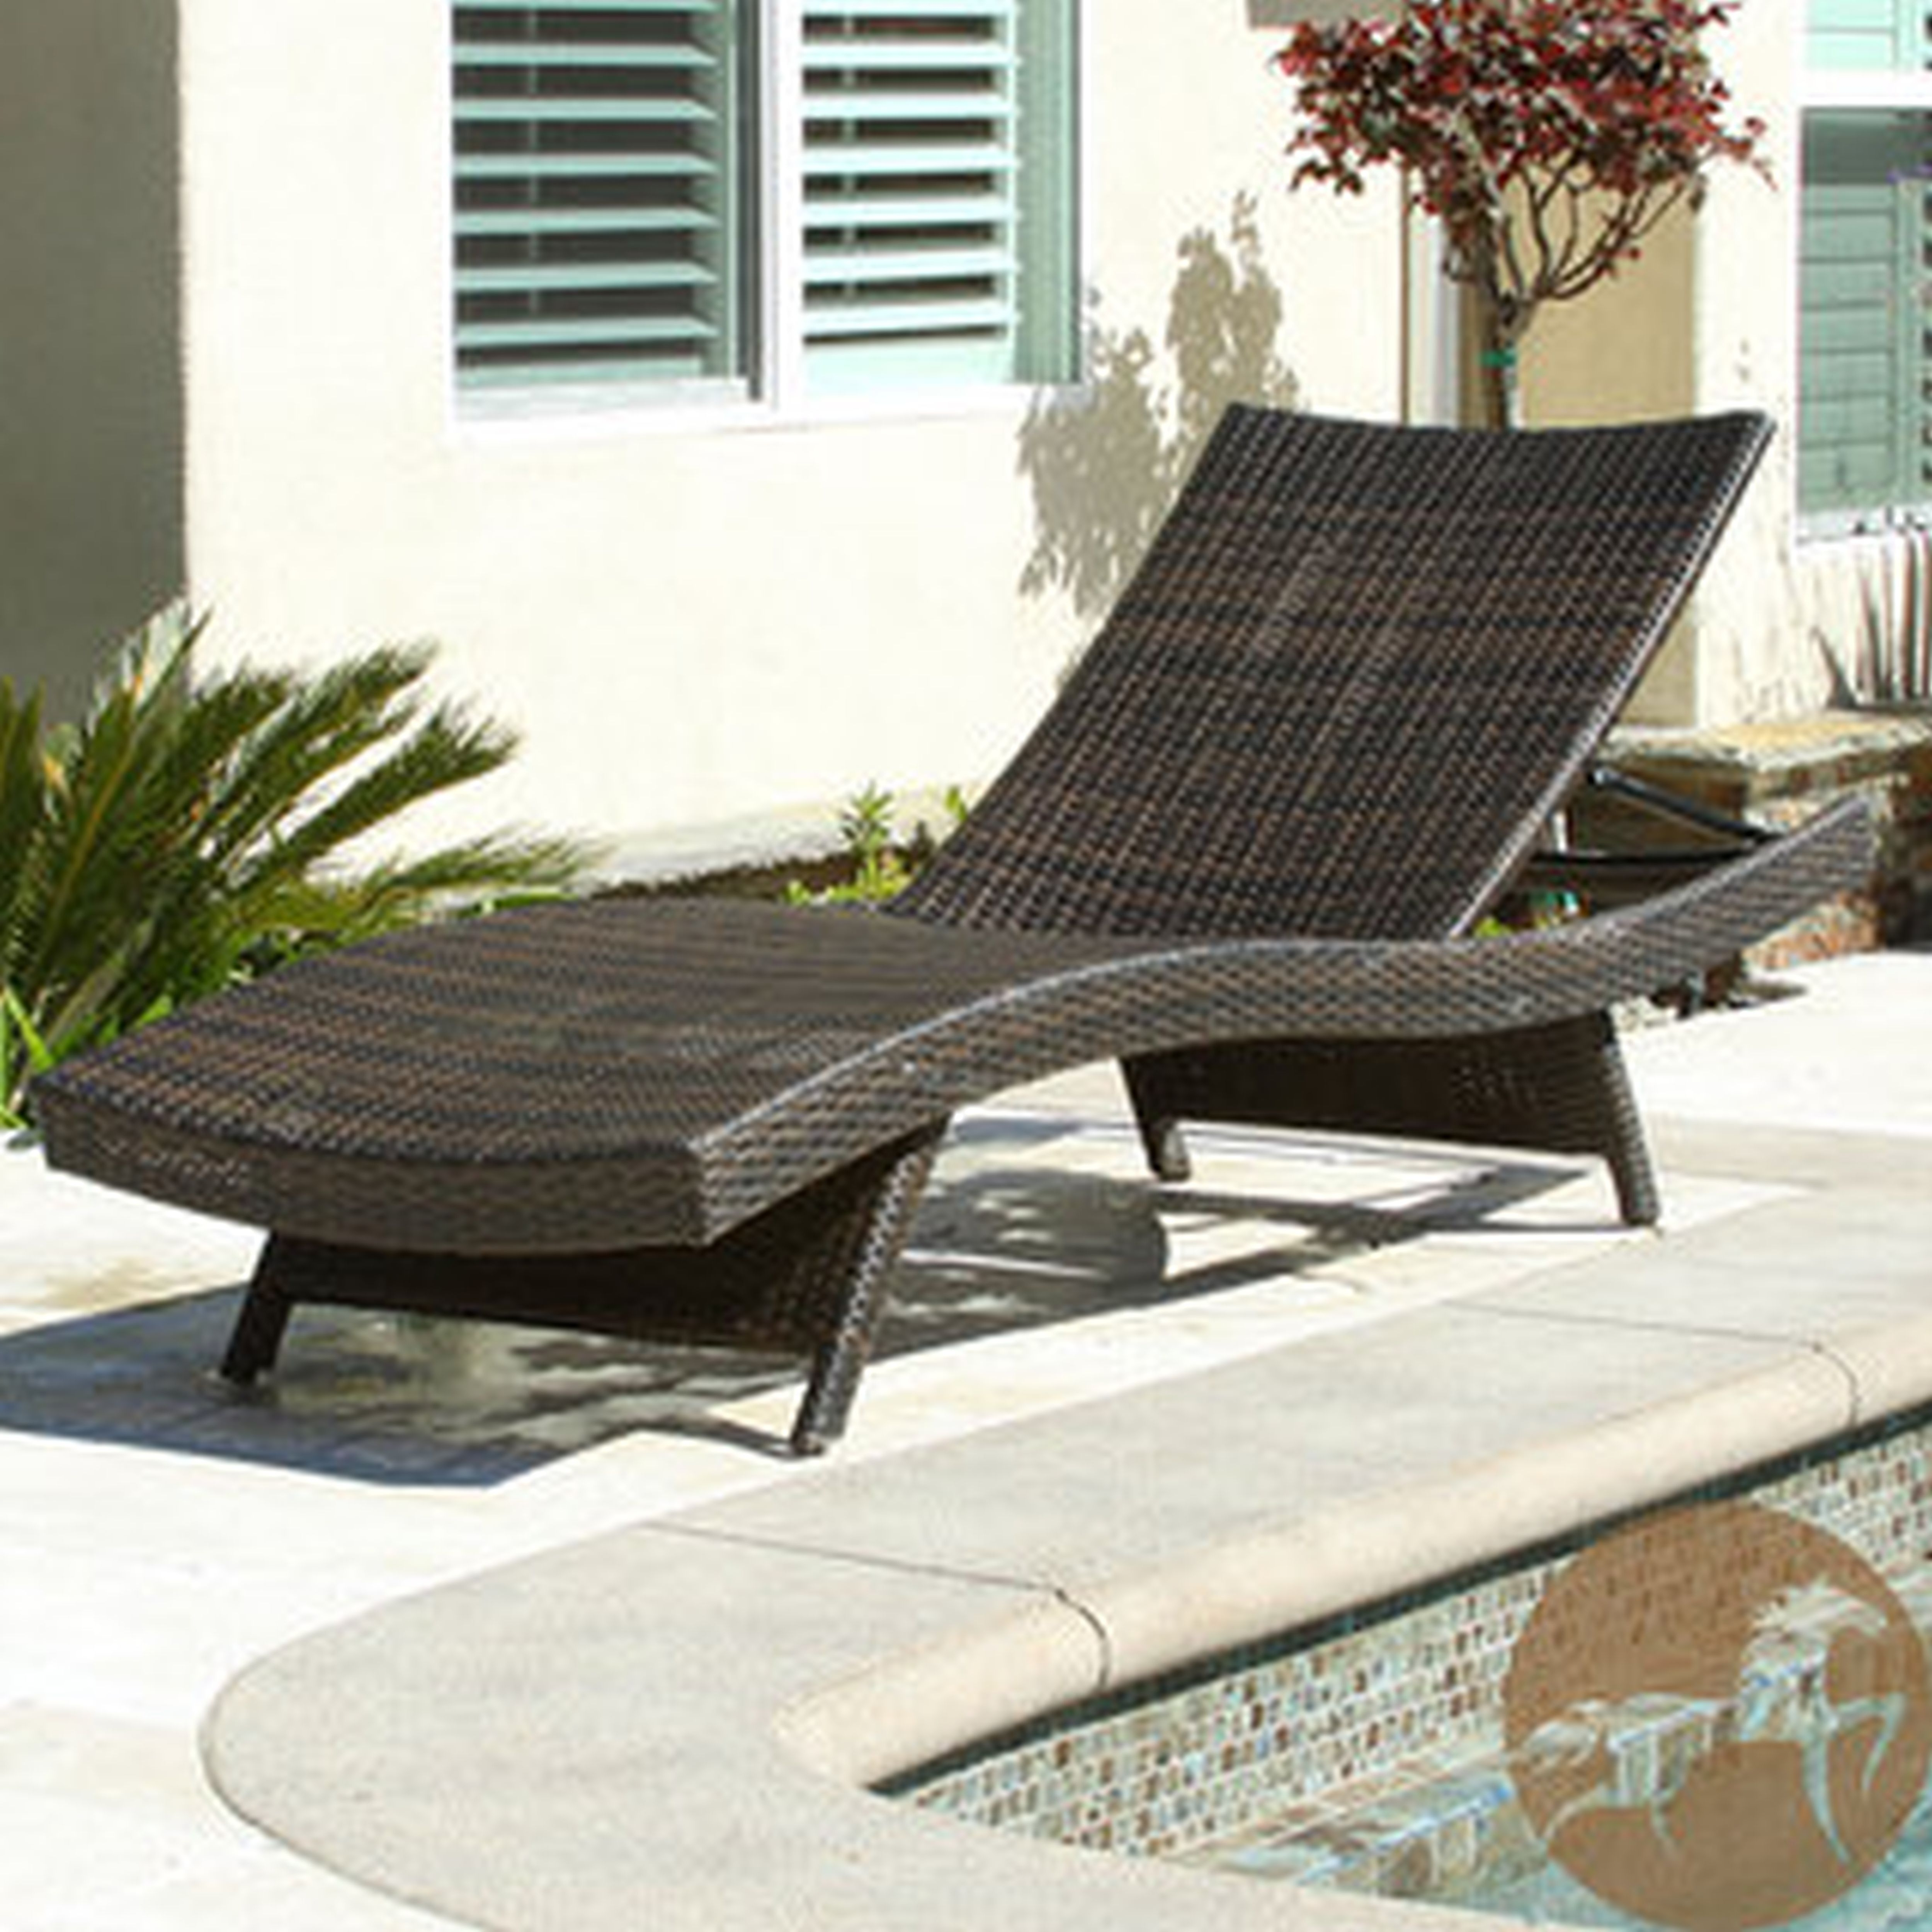 Trendy Outdoor Cushions For Chaise Lounge Chairs Throughout Convertible Chair : Cushions Rattan Chair Cushions High Back Patio (View 7 of 15)